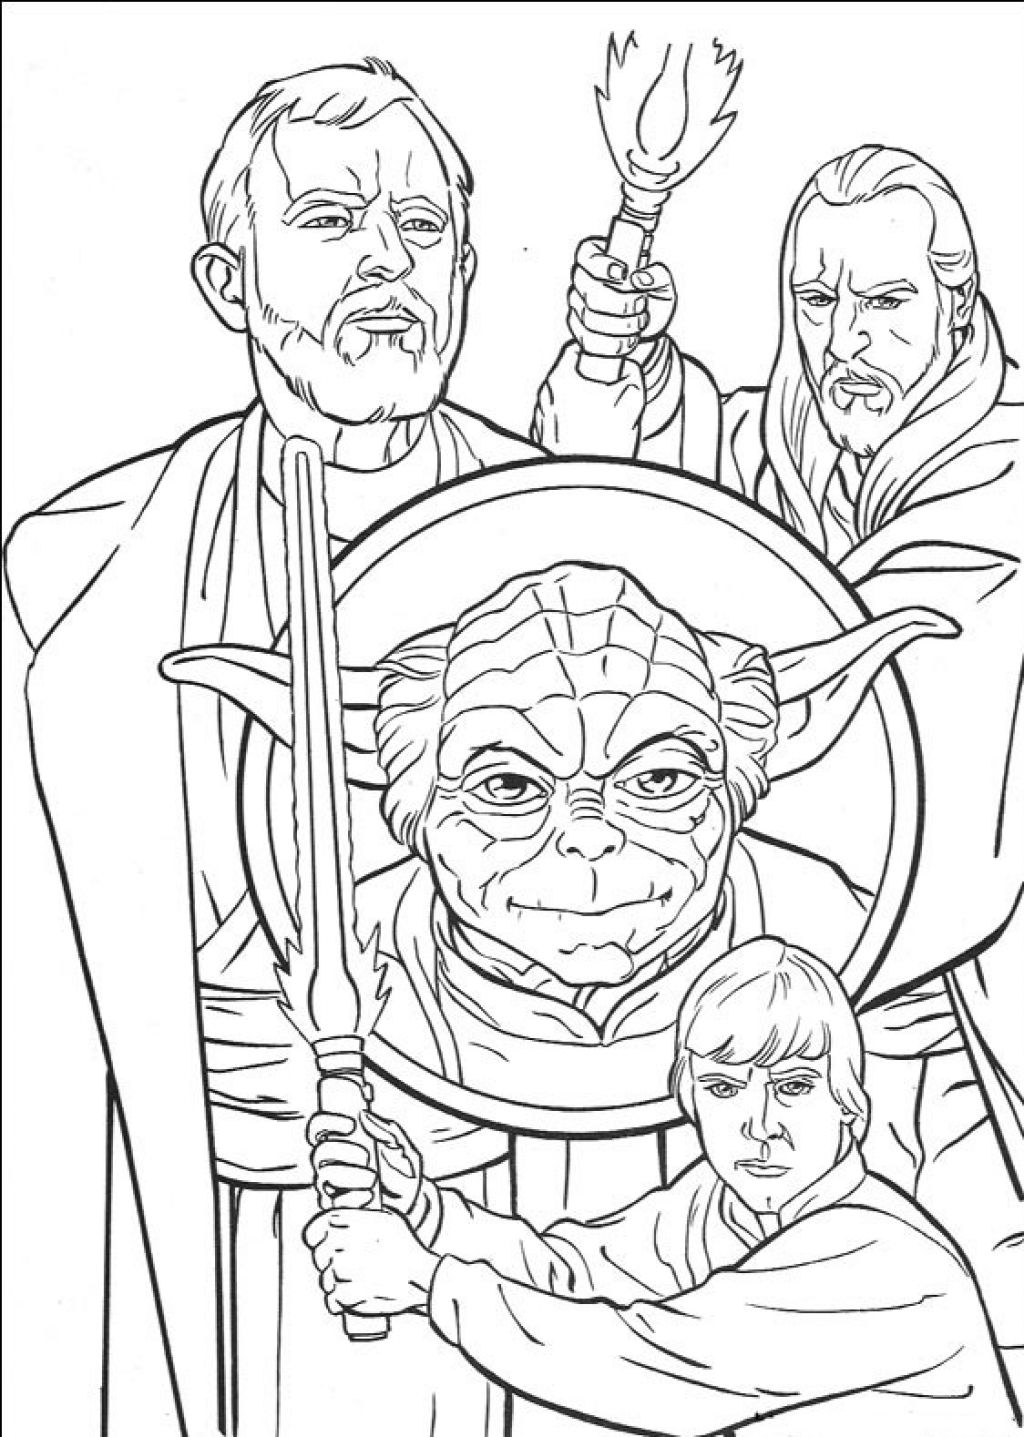 star wars coloring pages to print free printable star wars coloring pages free printable coloring star print to pages wars